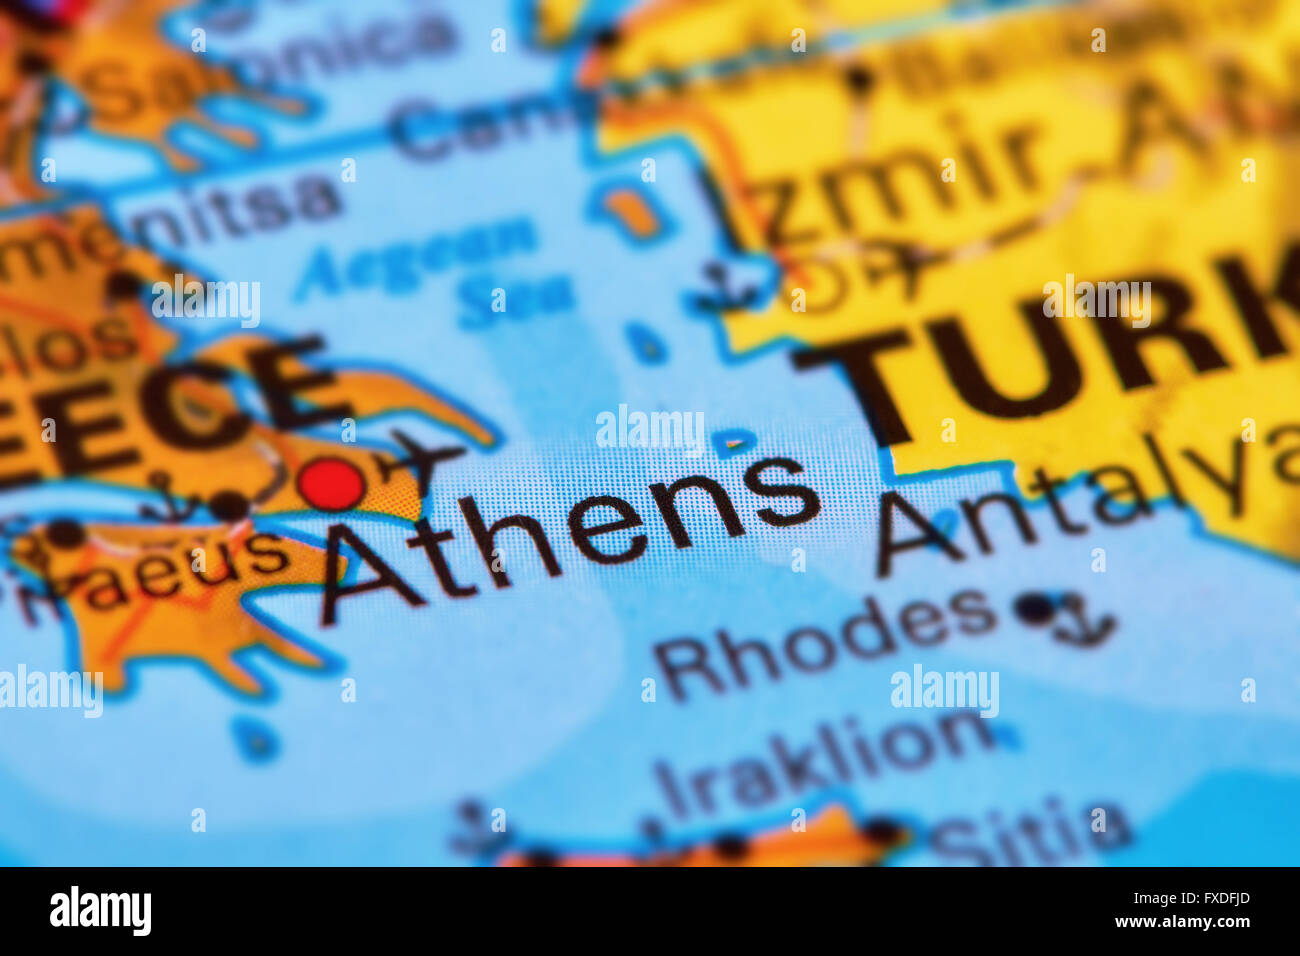 Athens Capital City of Greece on the World Map Stock Photo